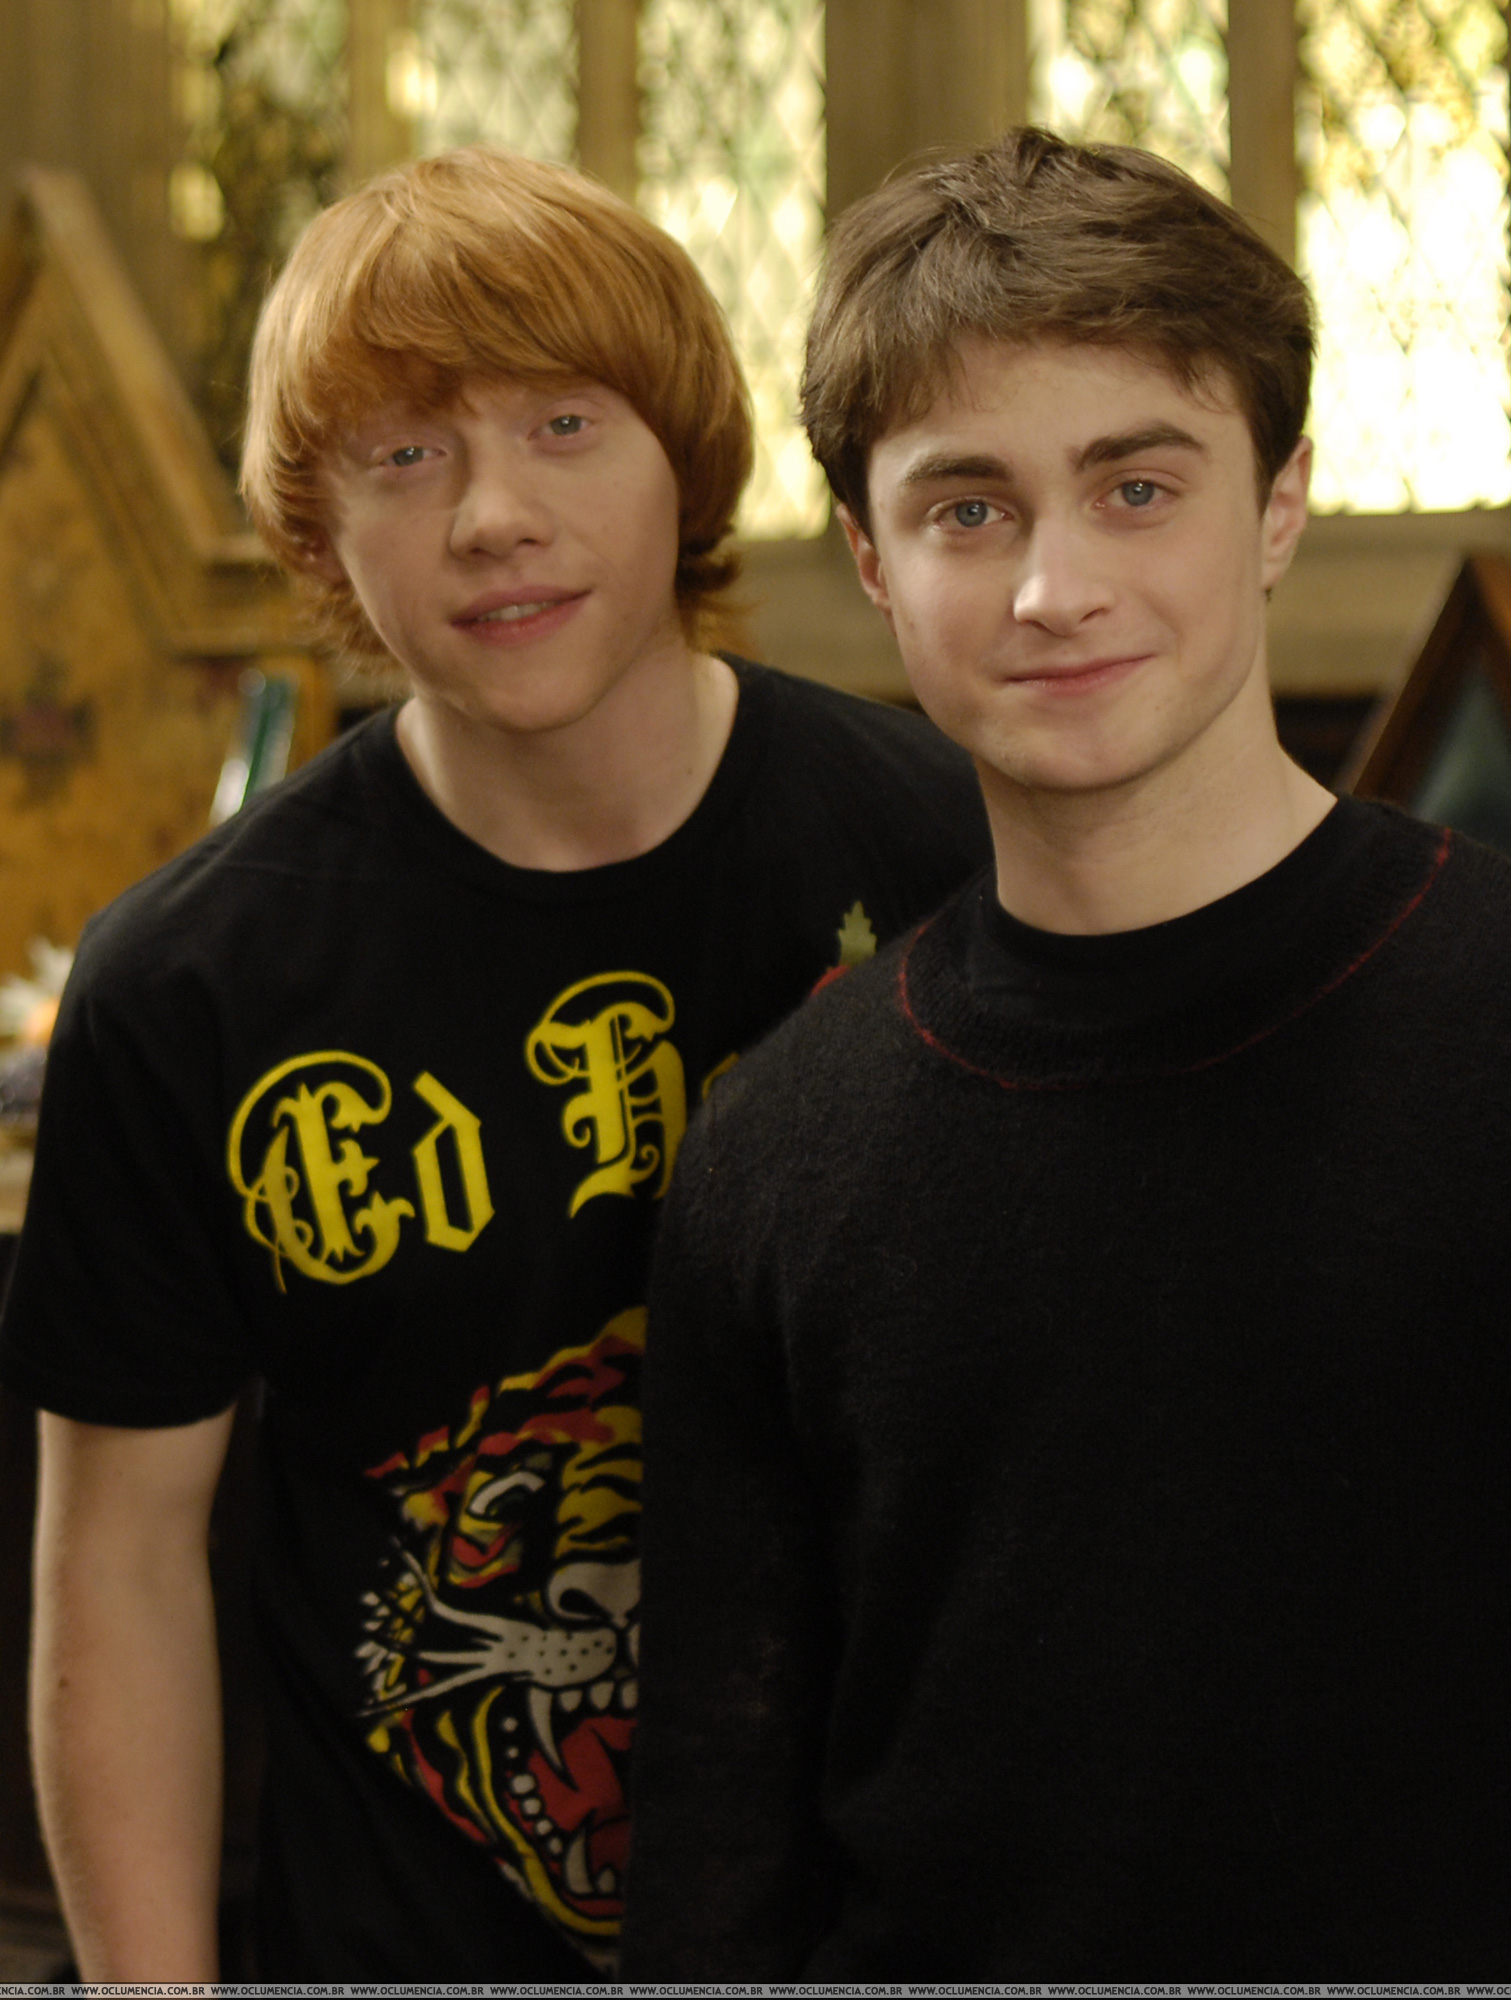 Harry Potter Quote About Friendship Rupert Grint Biography » Cast Members' Quotes